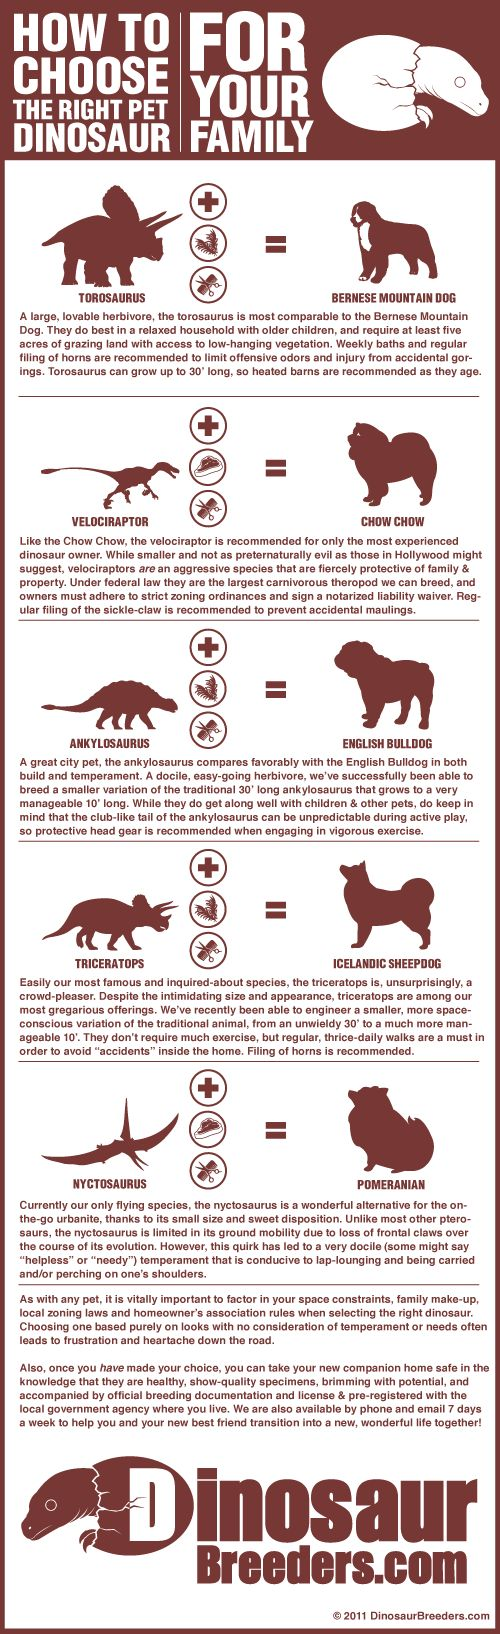 Hmmm, I can't decide between velociraptor and nyctosaurus. Protection for my family, or cuddly indoor flyer?